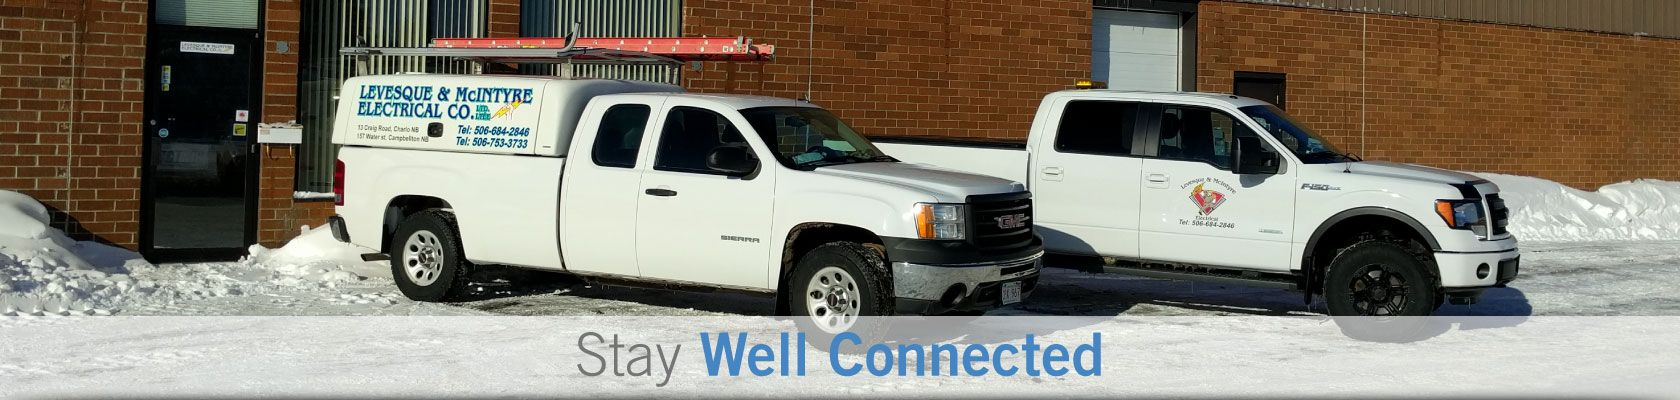 Stay Well Connected - Company.s truck